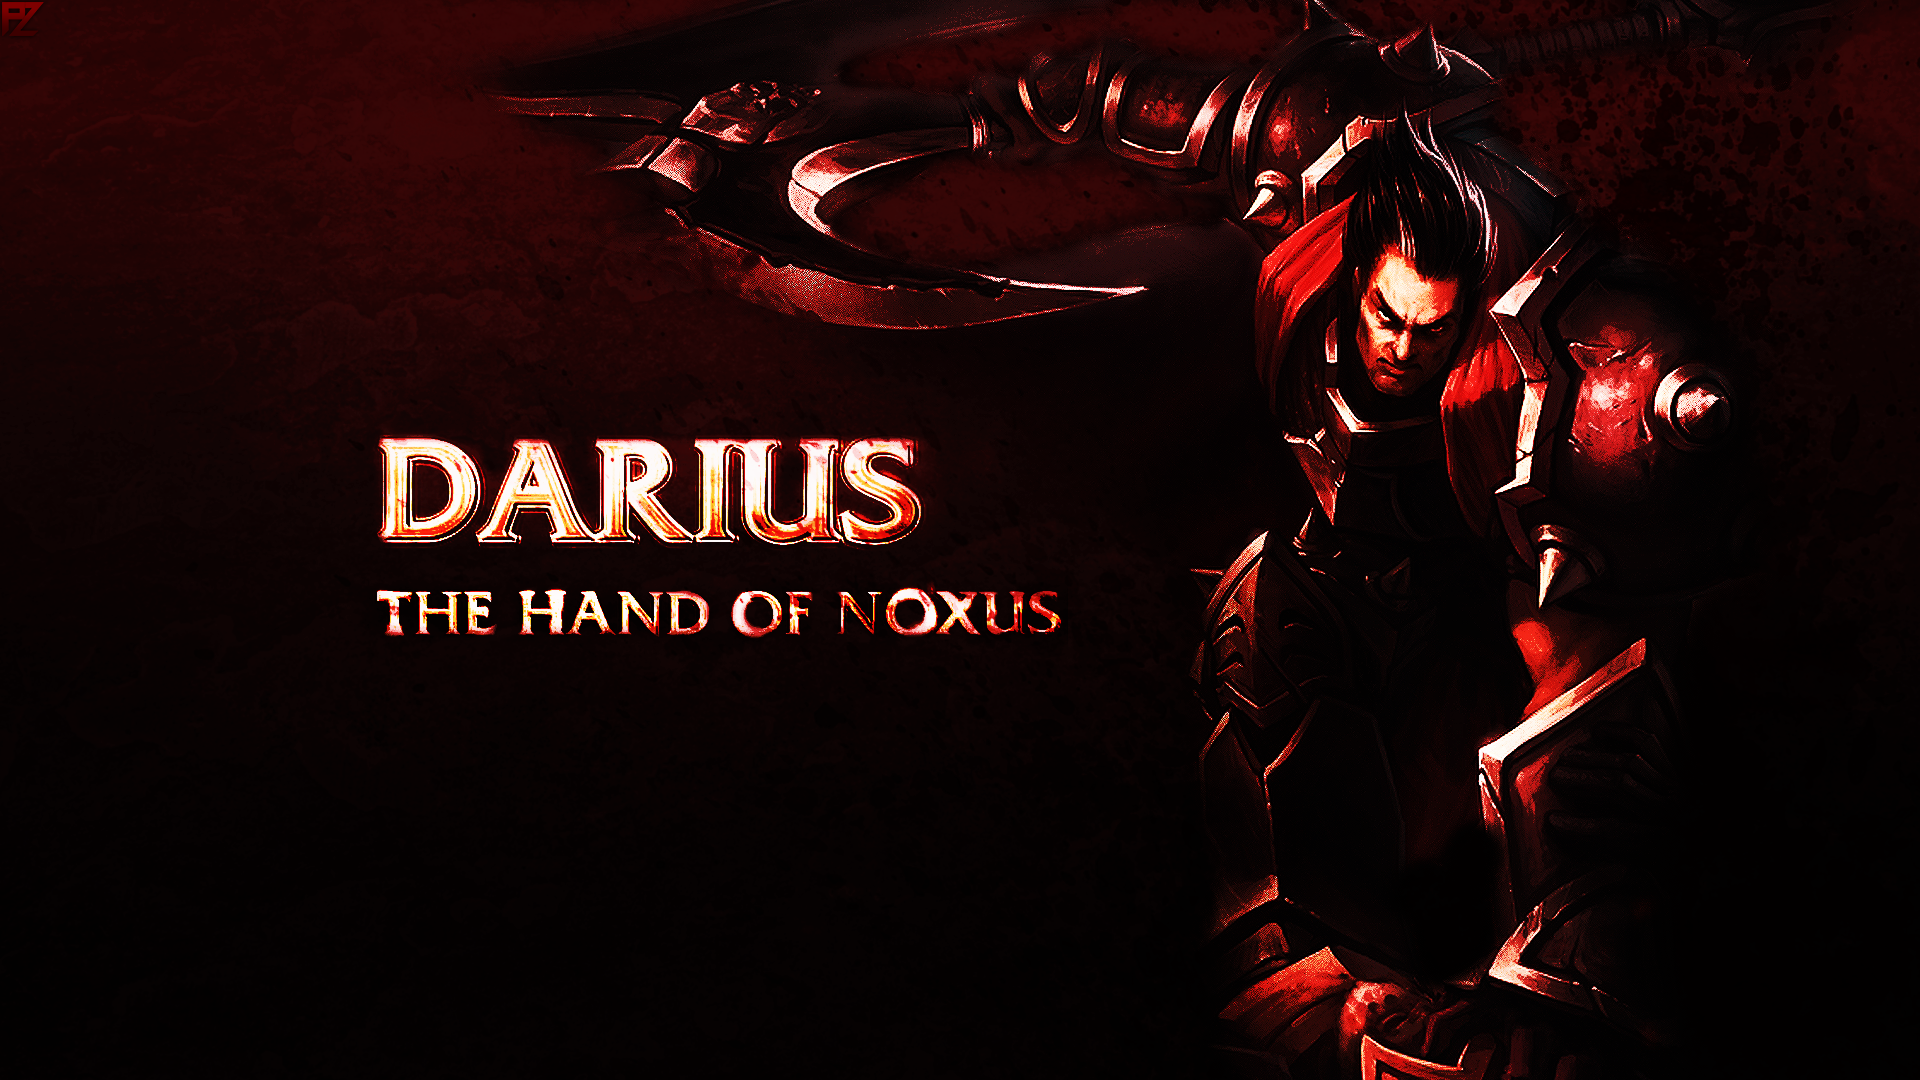 darius__the_hand_of_noxus_by_programmz-d5s2ury